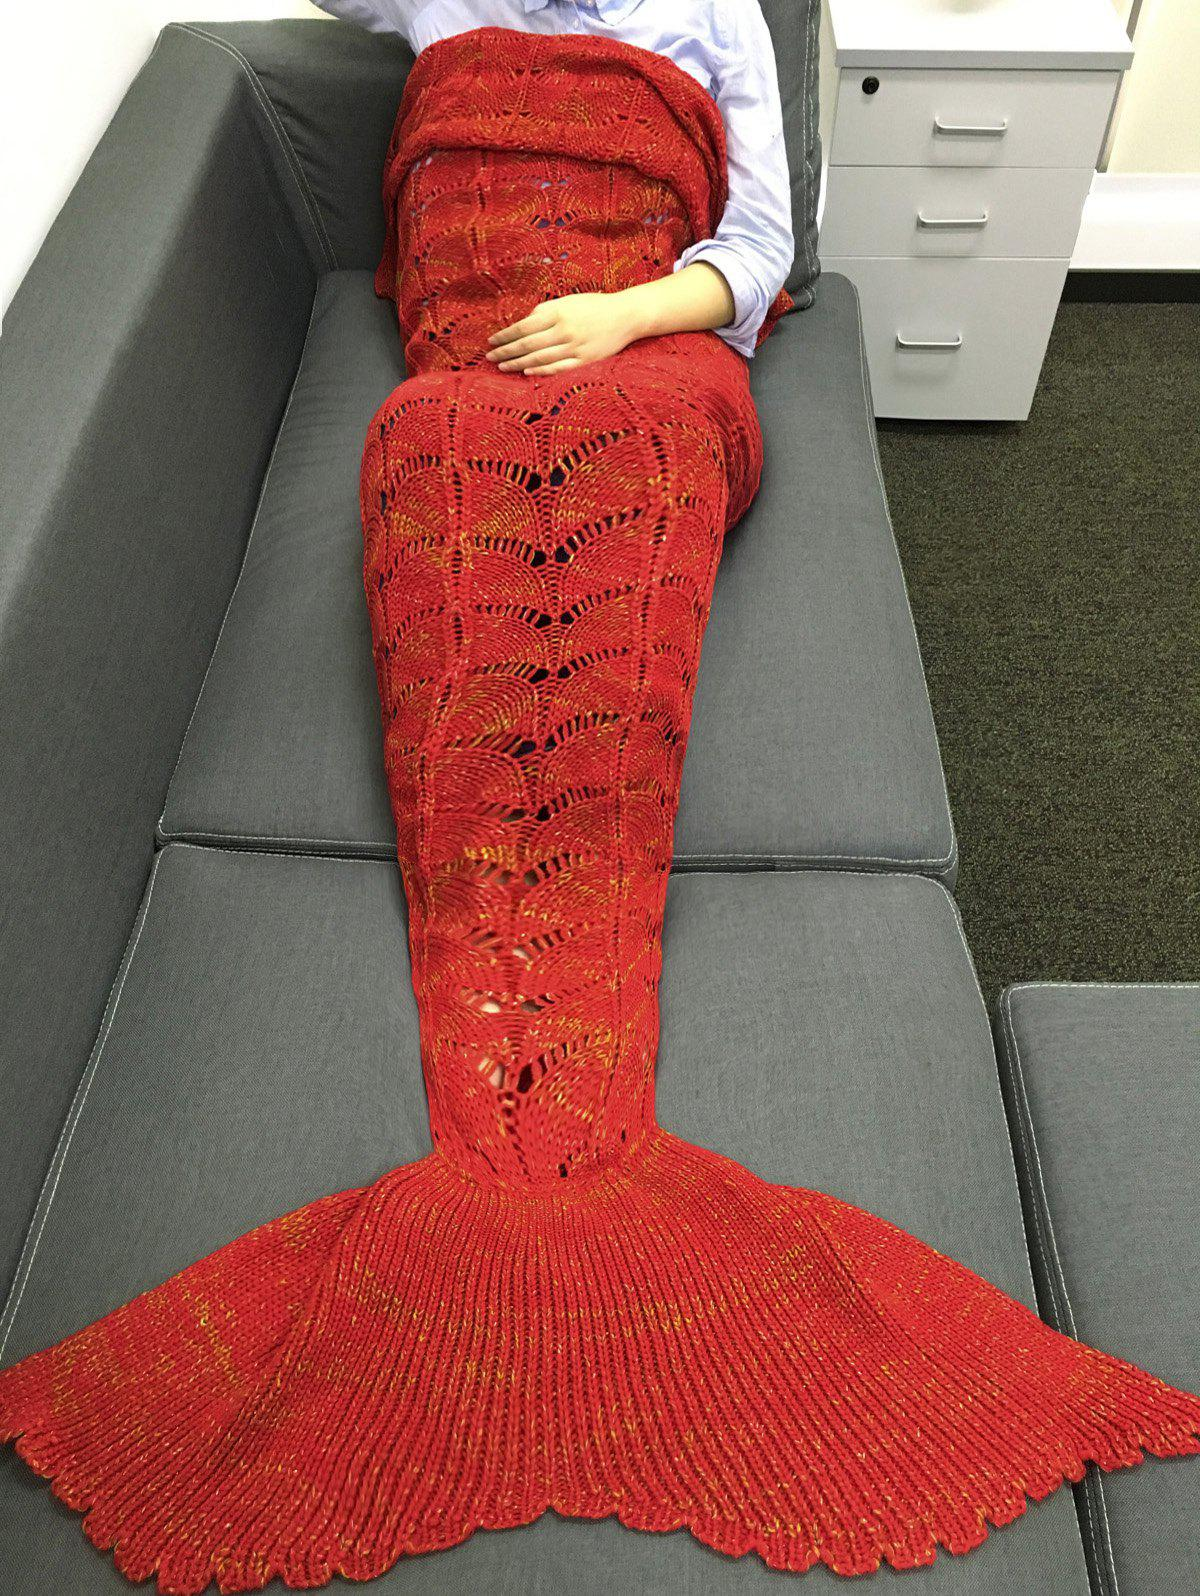 Fashionable Knitting Hollow Out Design Mermaid Shape Blanket